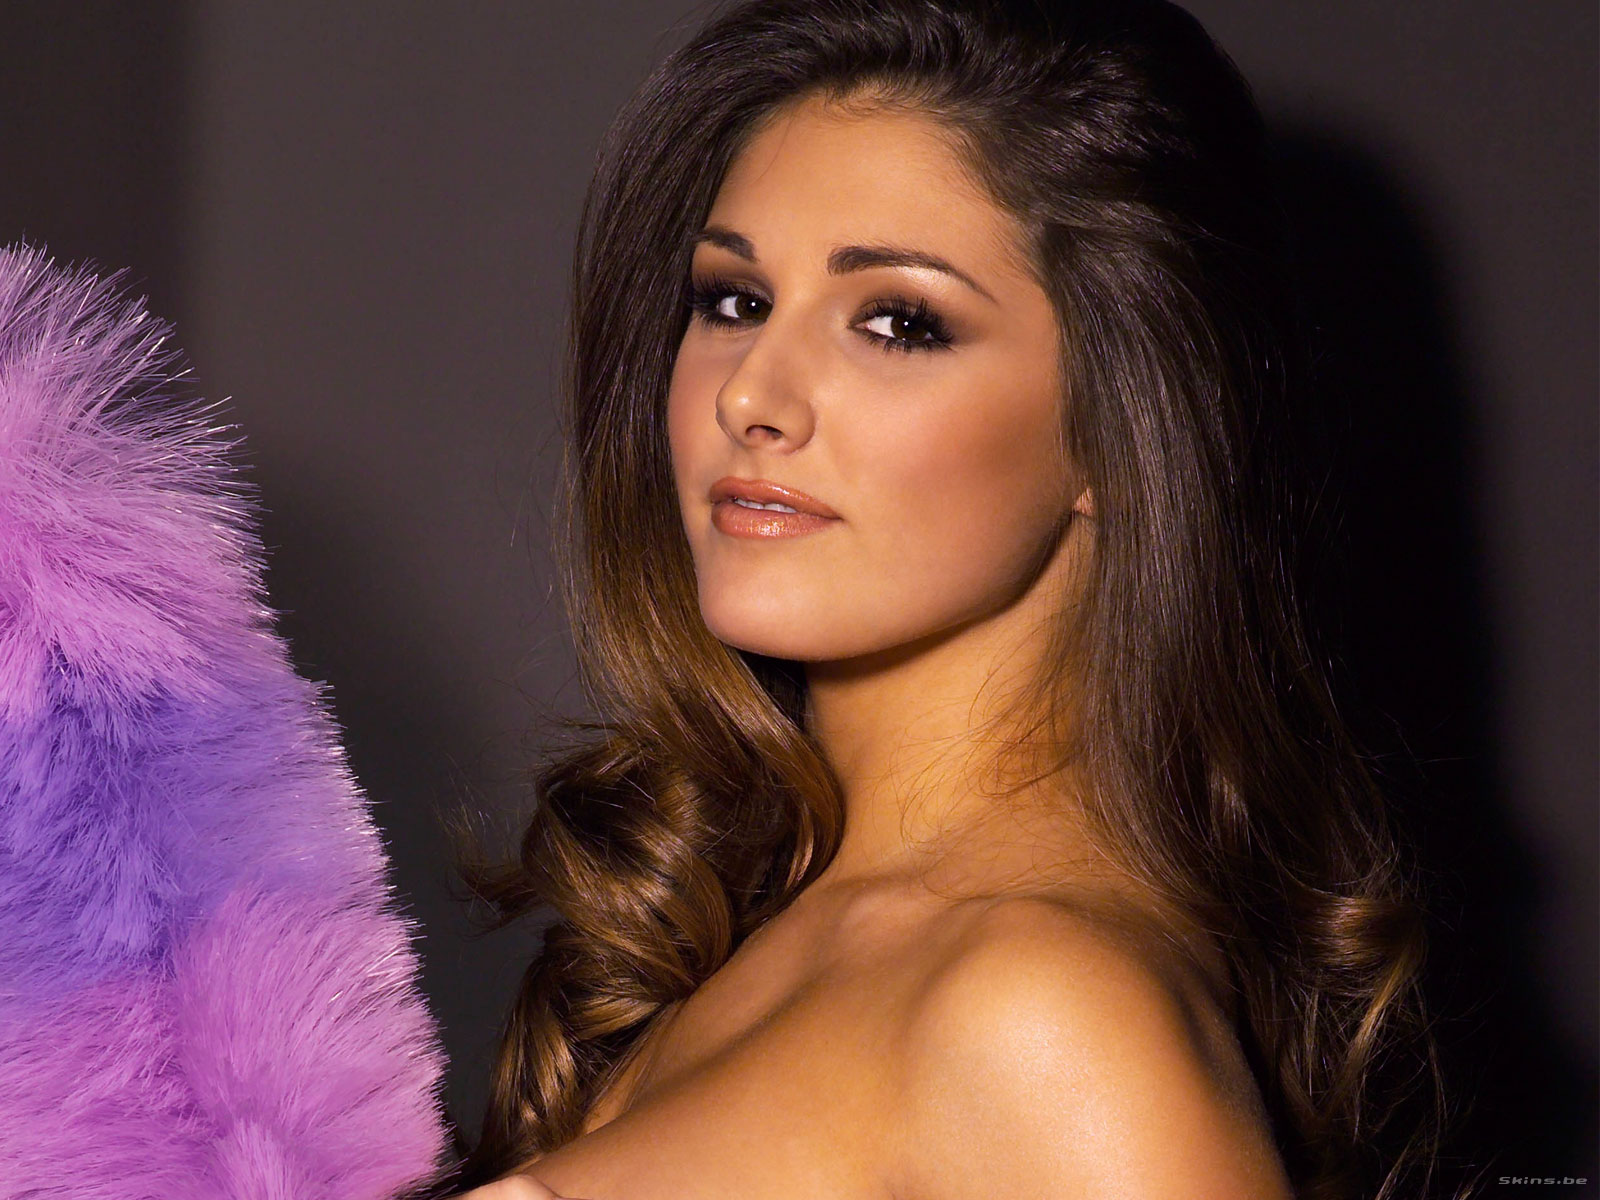 Hd Wallpapers Cute Smile Lucy Pinder